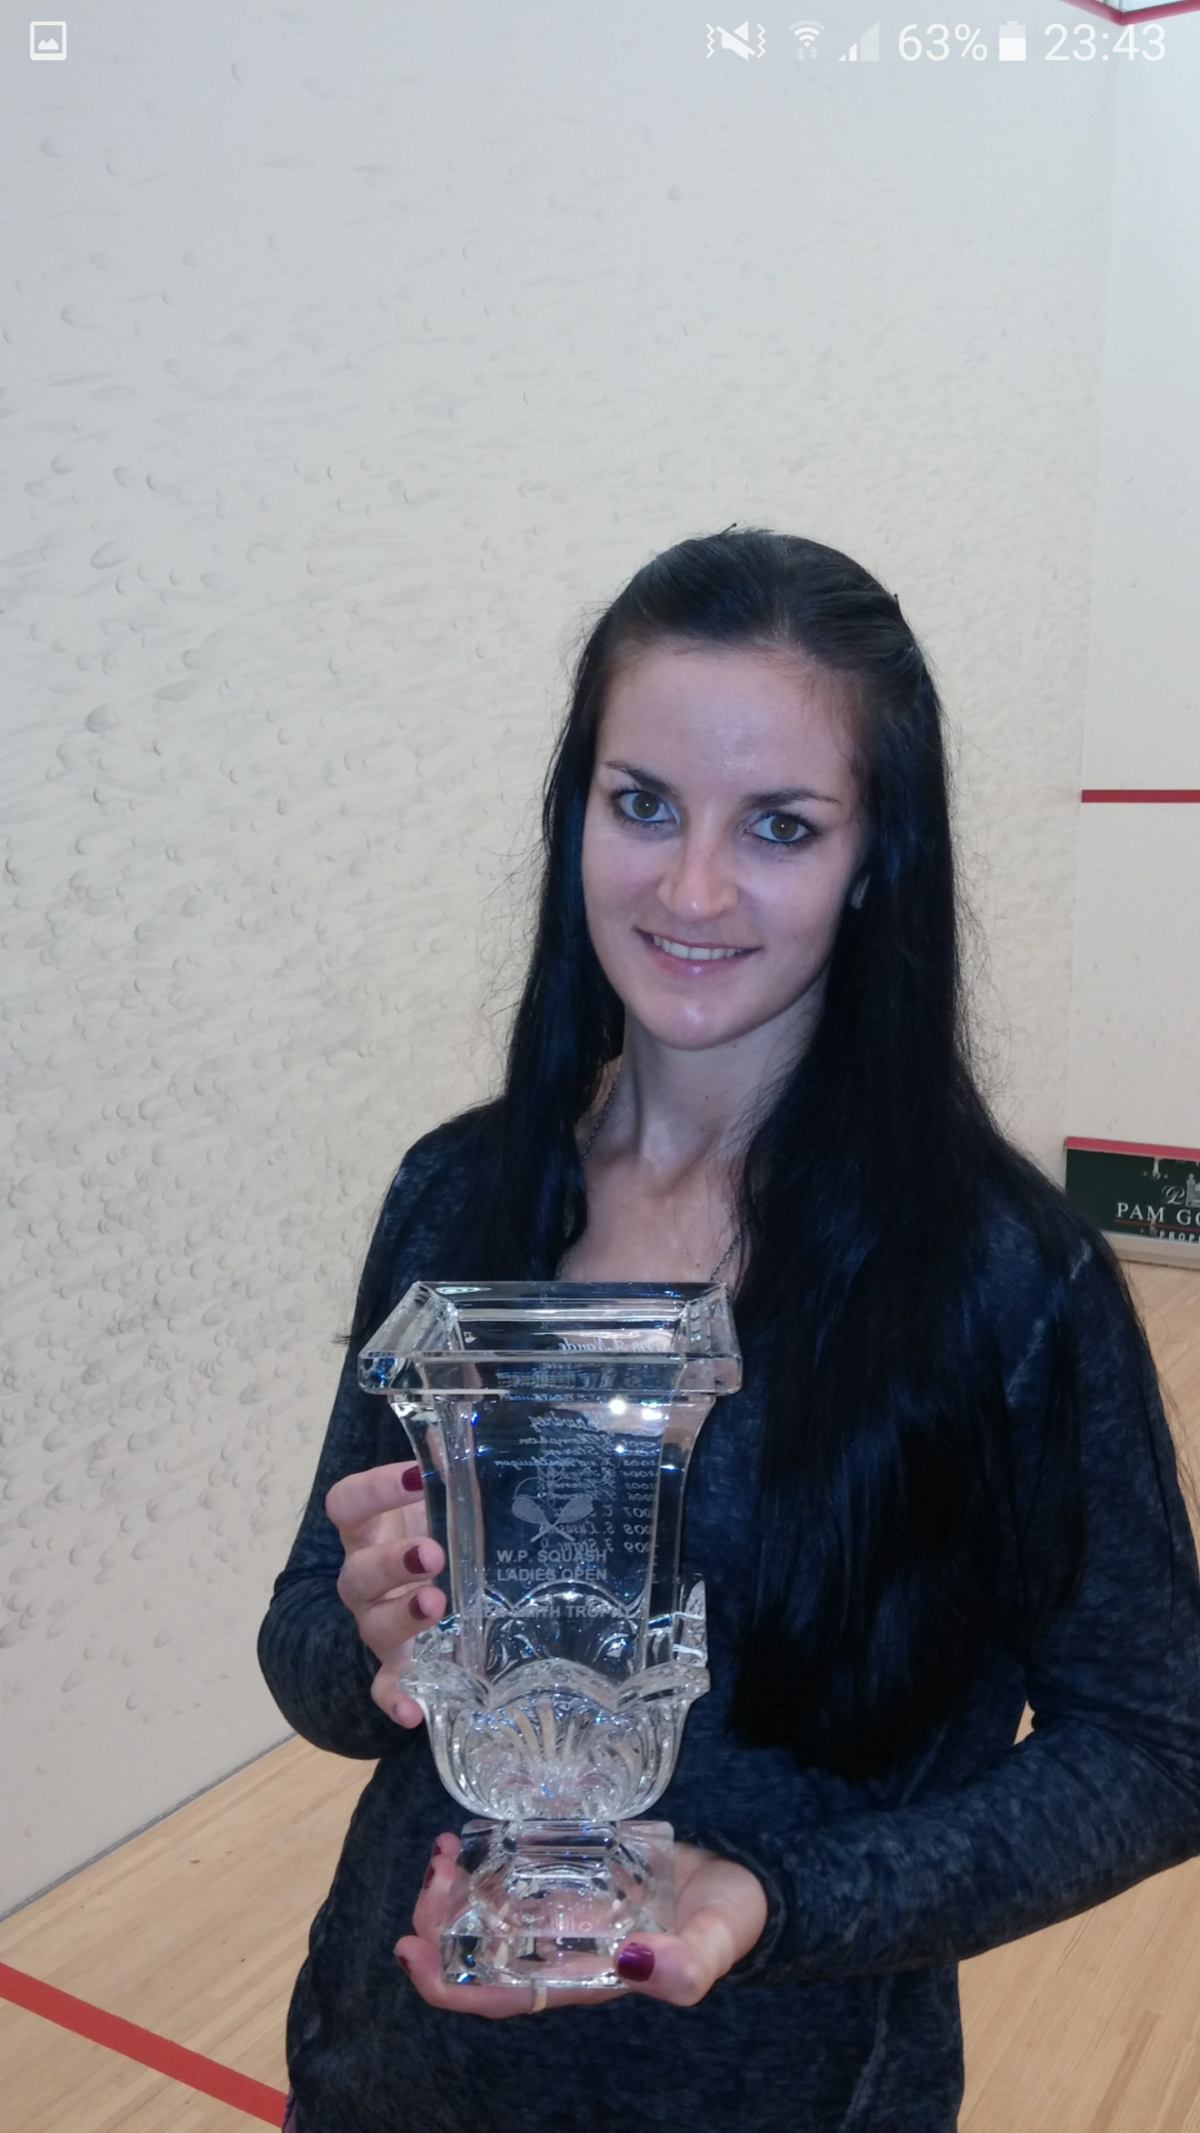 Milnay posing with trophy on squash court